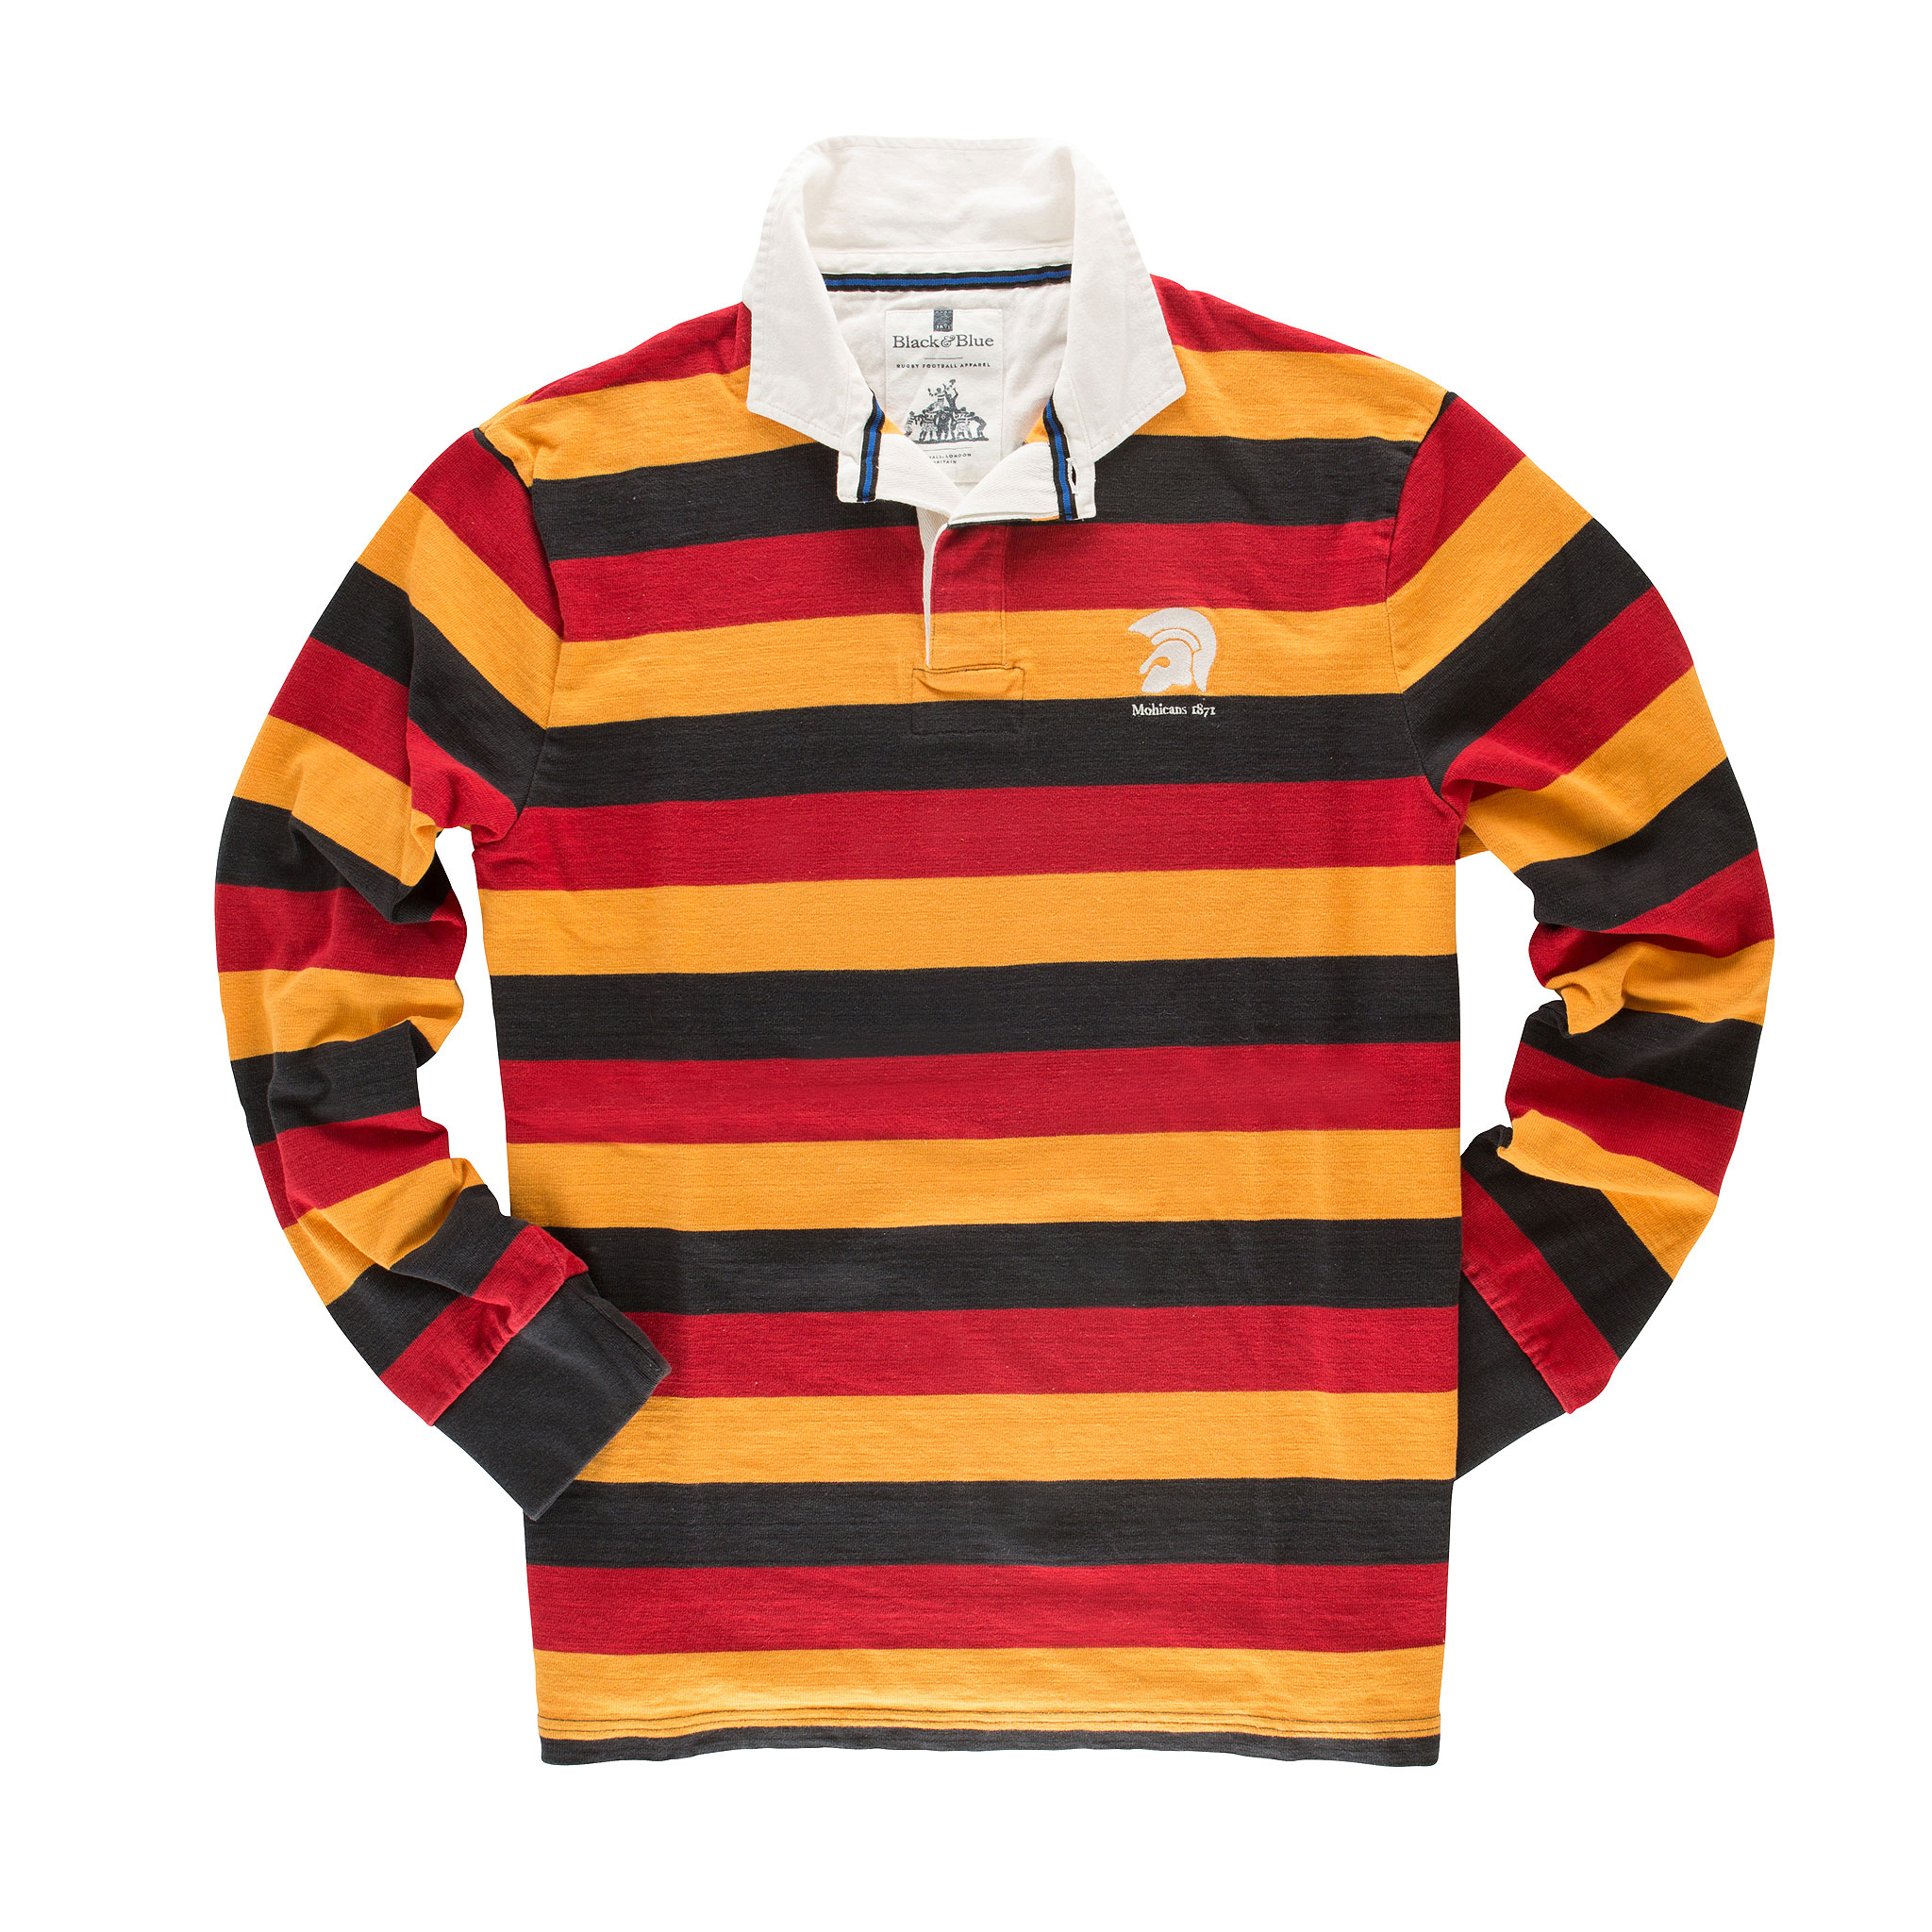 Mohicans 1871 Rugby Shirt - front